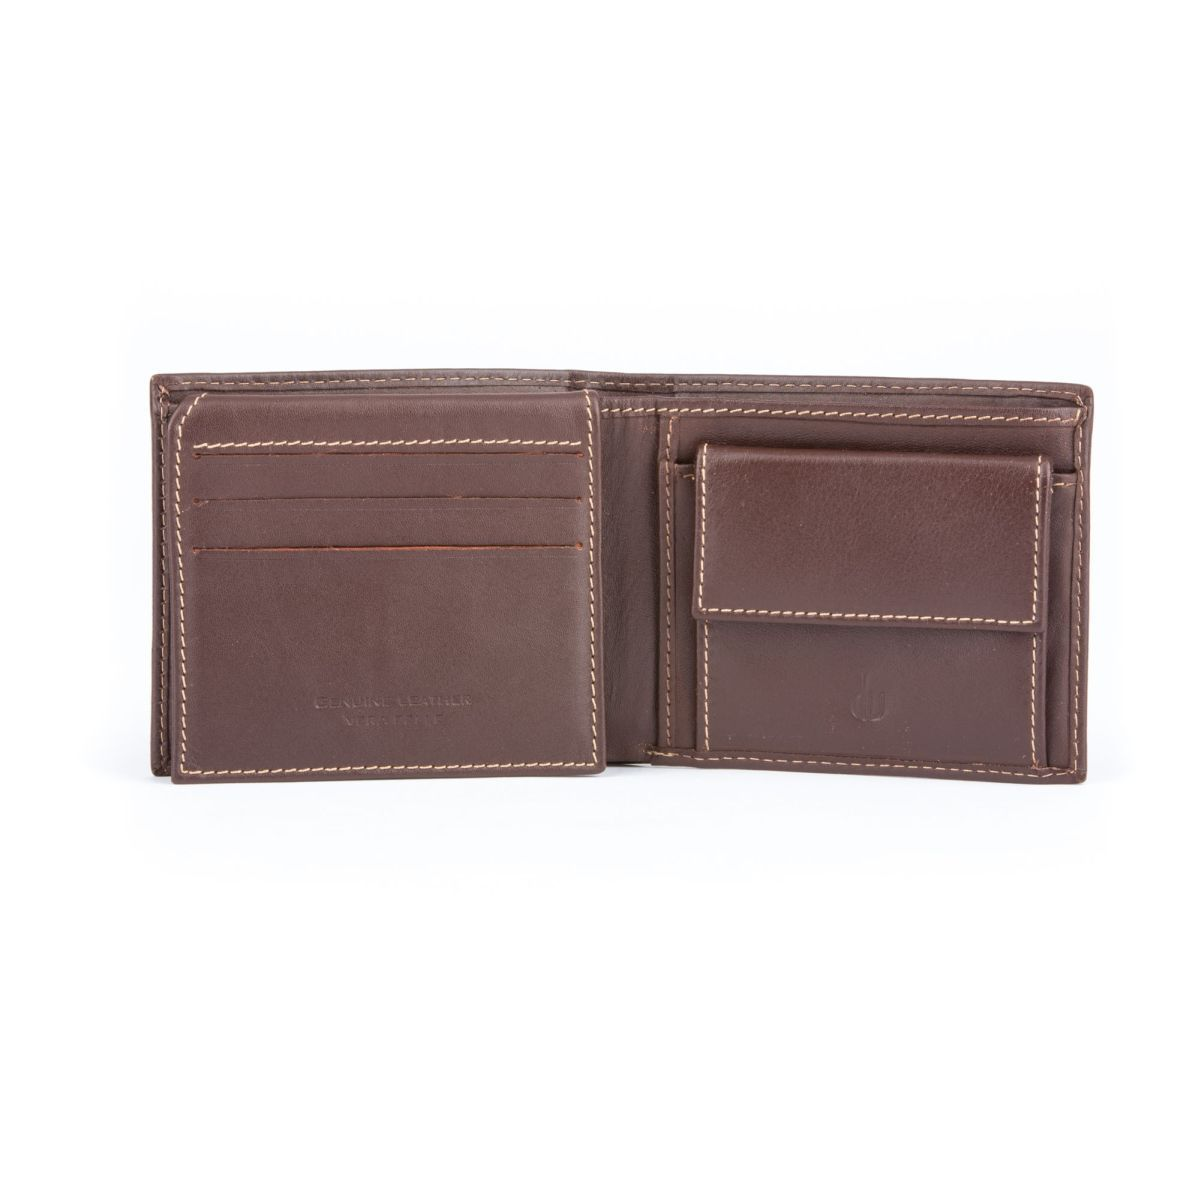 Compact Leather Wallet With Coin Pocket - Brown